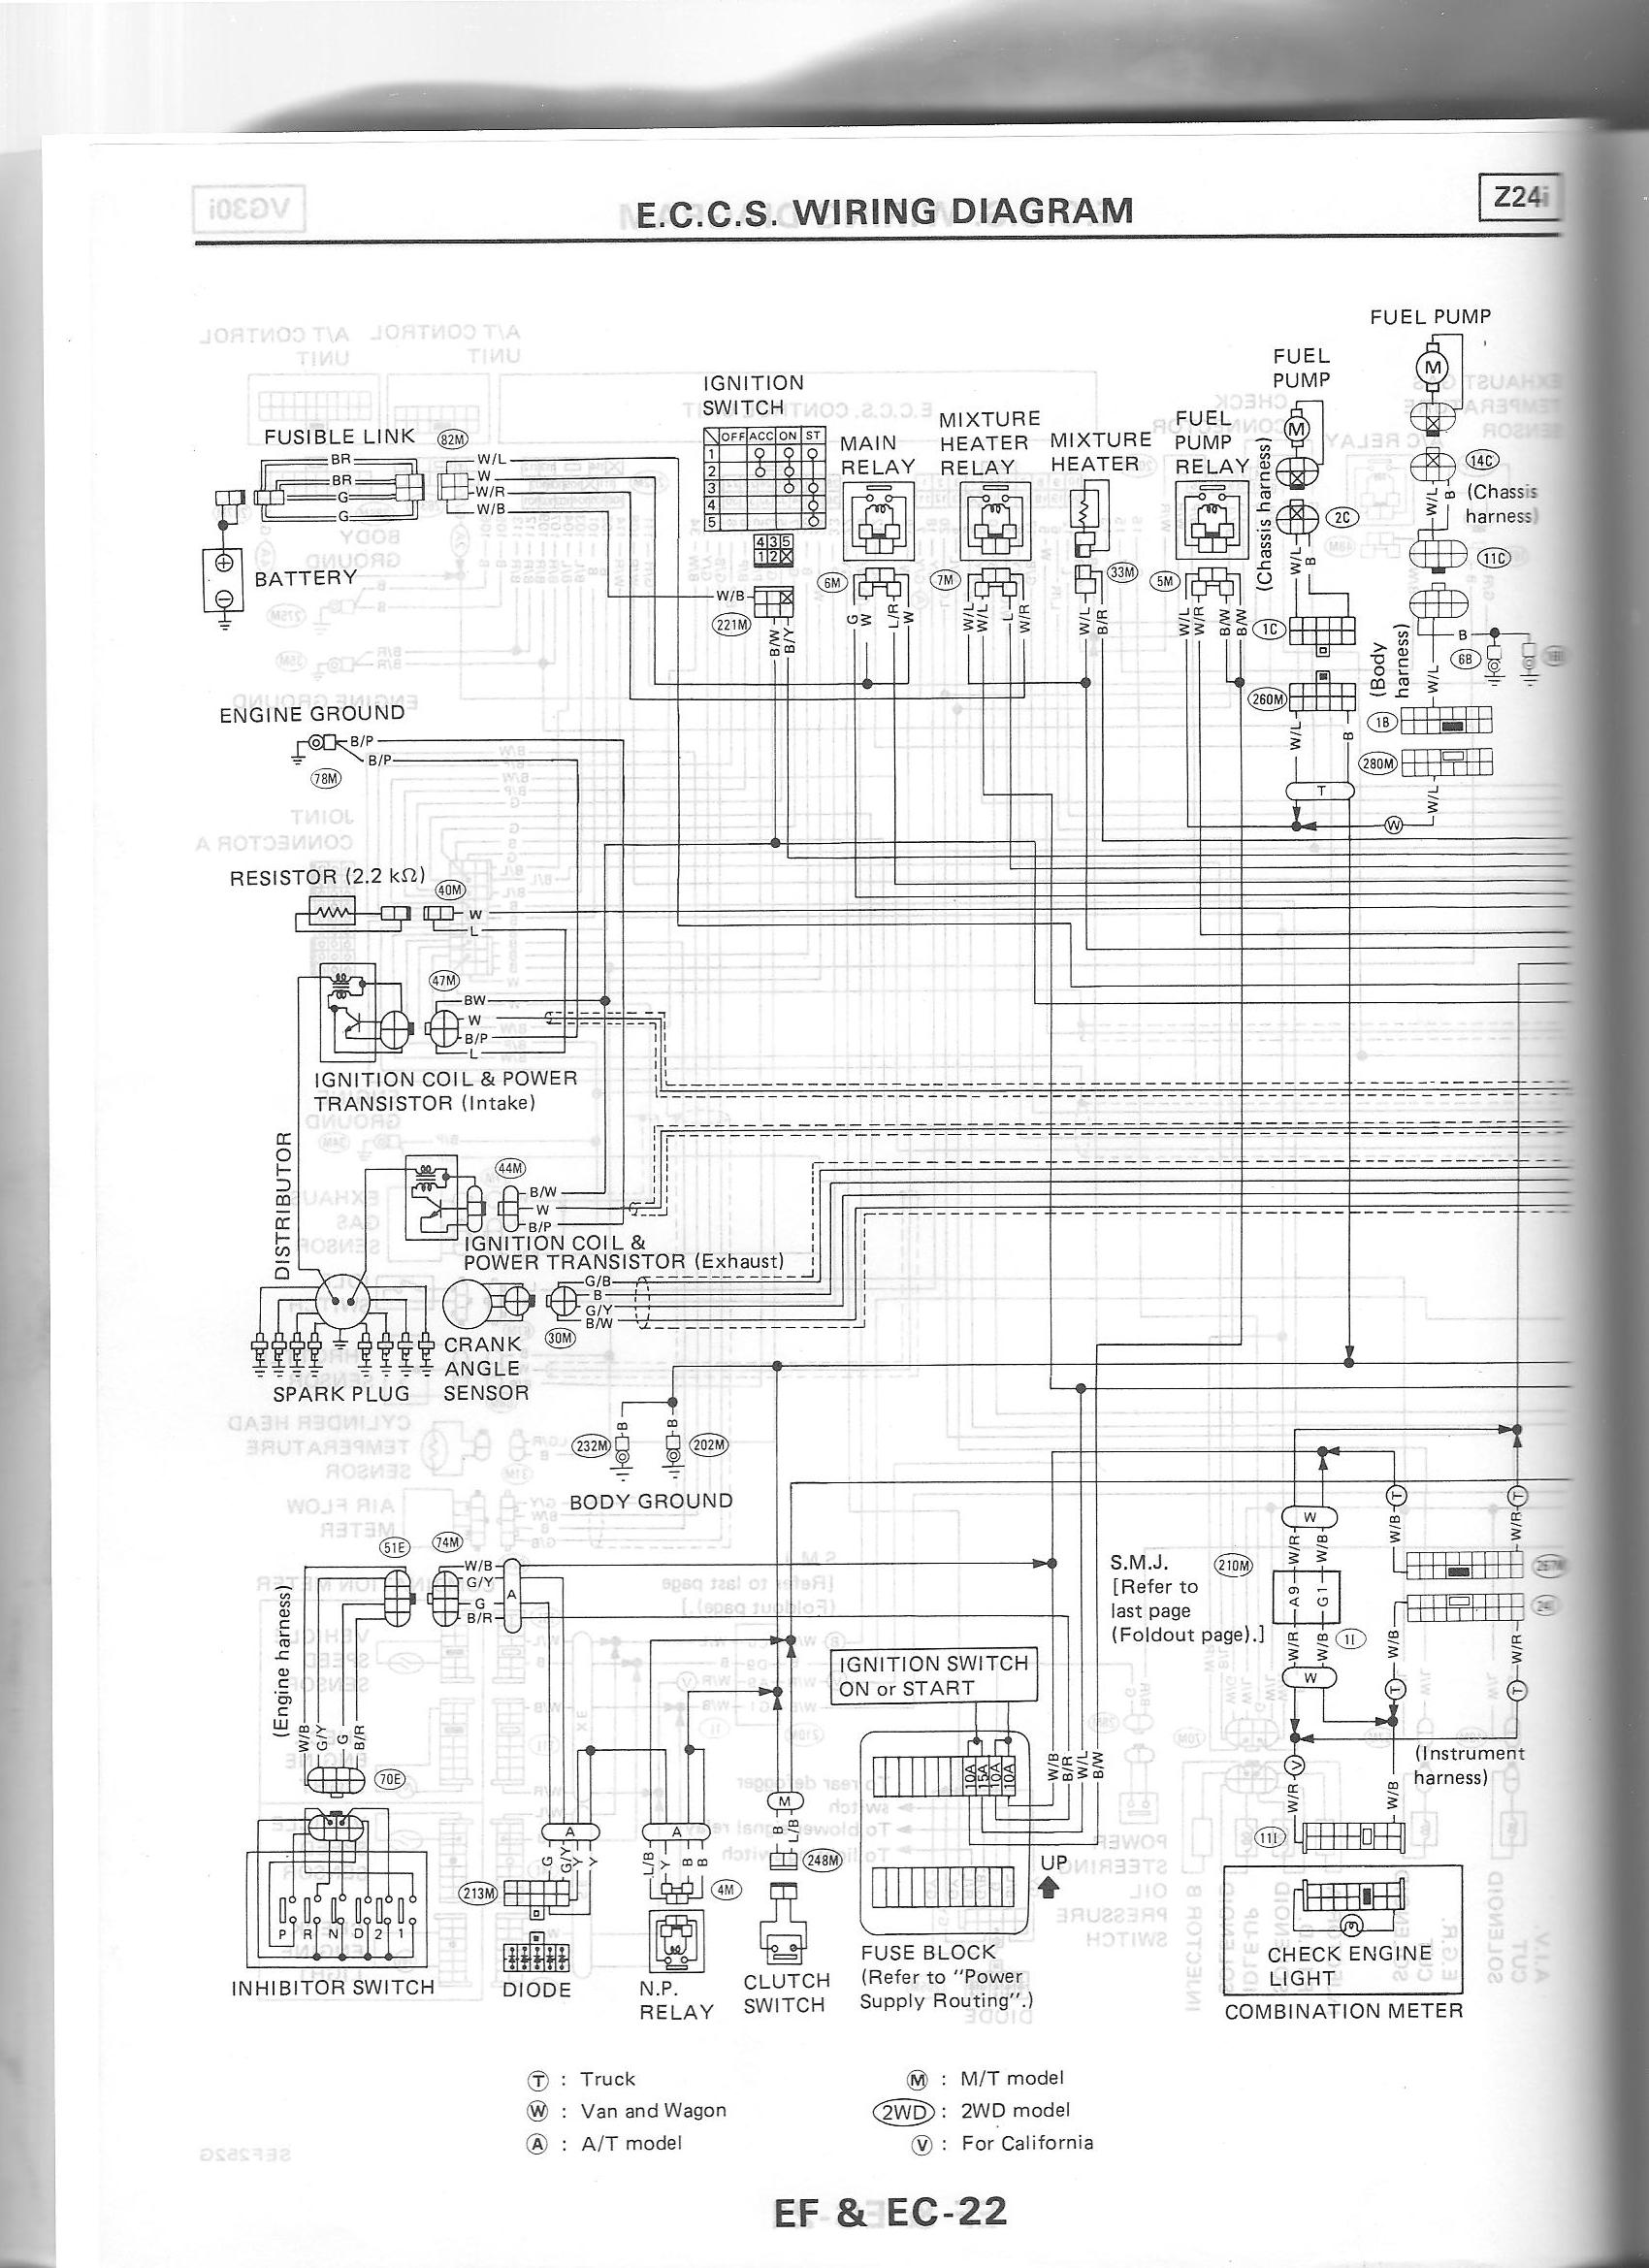 Nissan Wiring Diagram And Body Electrical Parts Schematic 1988 Z24i